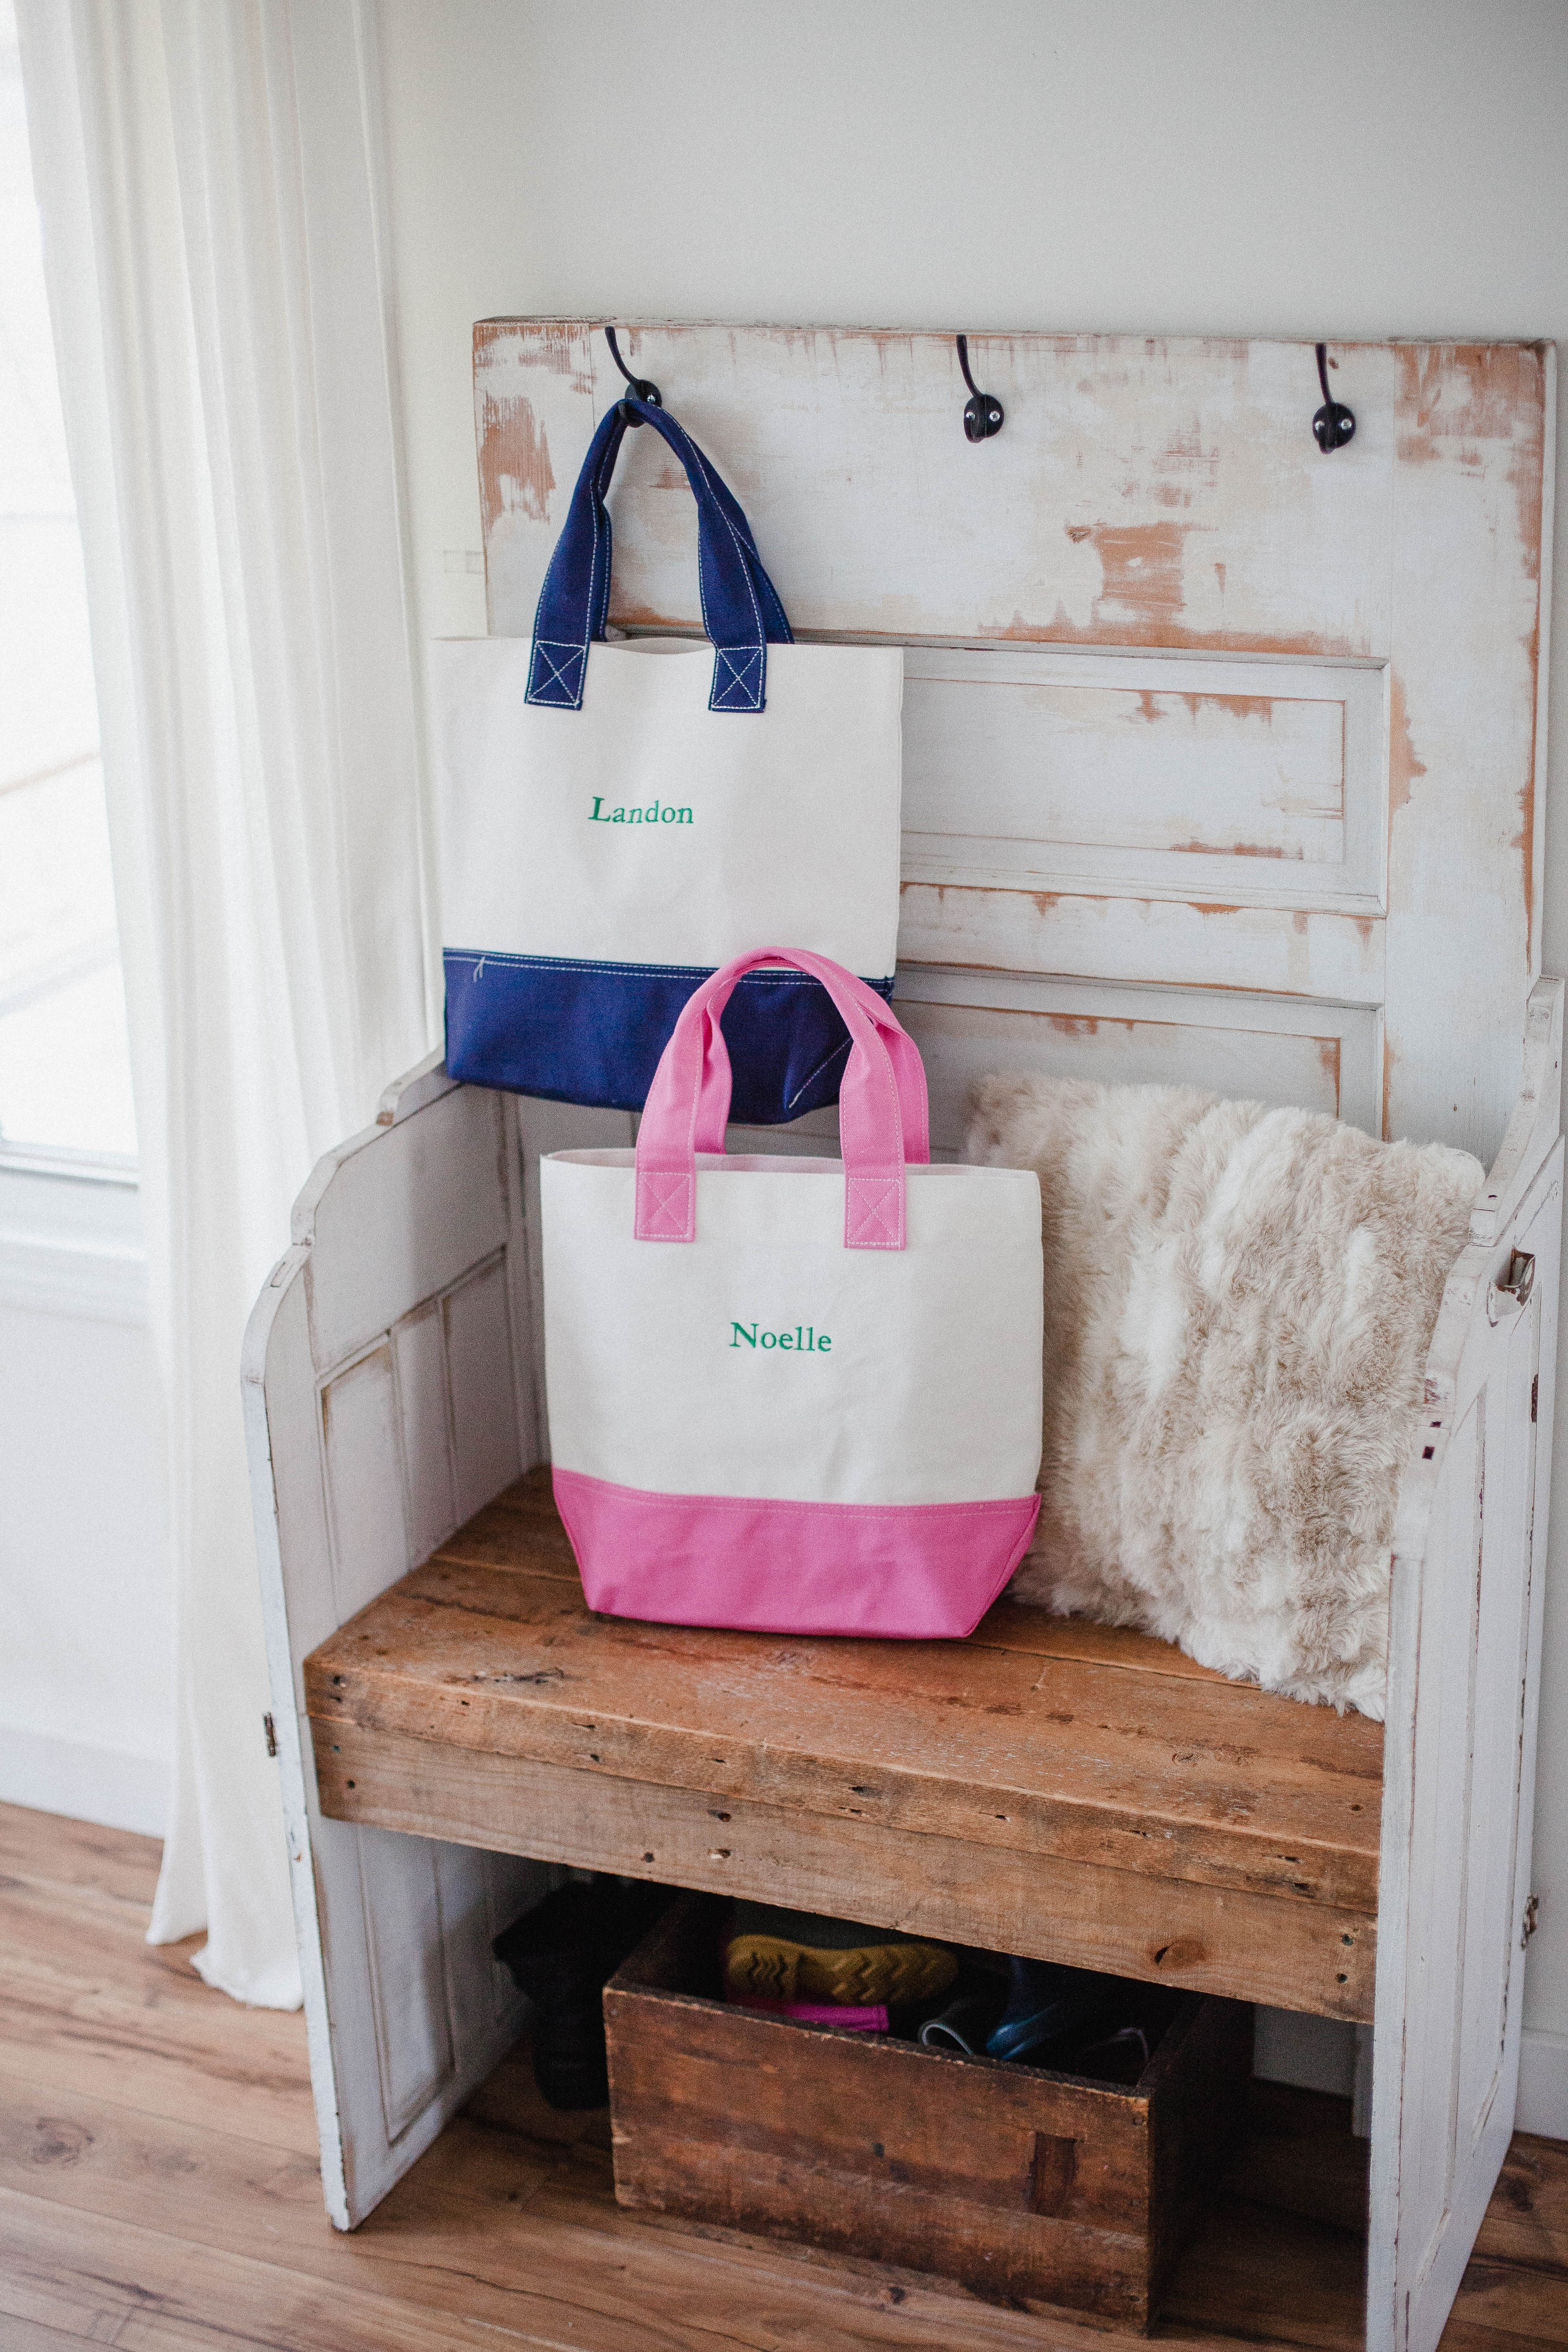 Life and style blogger Lauren McBride shares her tips on How to Help Your Child Transition to a New Baby, including fun big brother/sister bags!